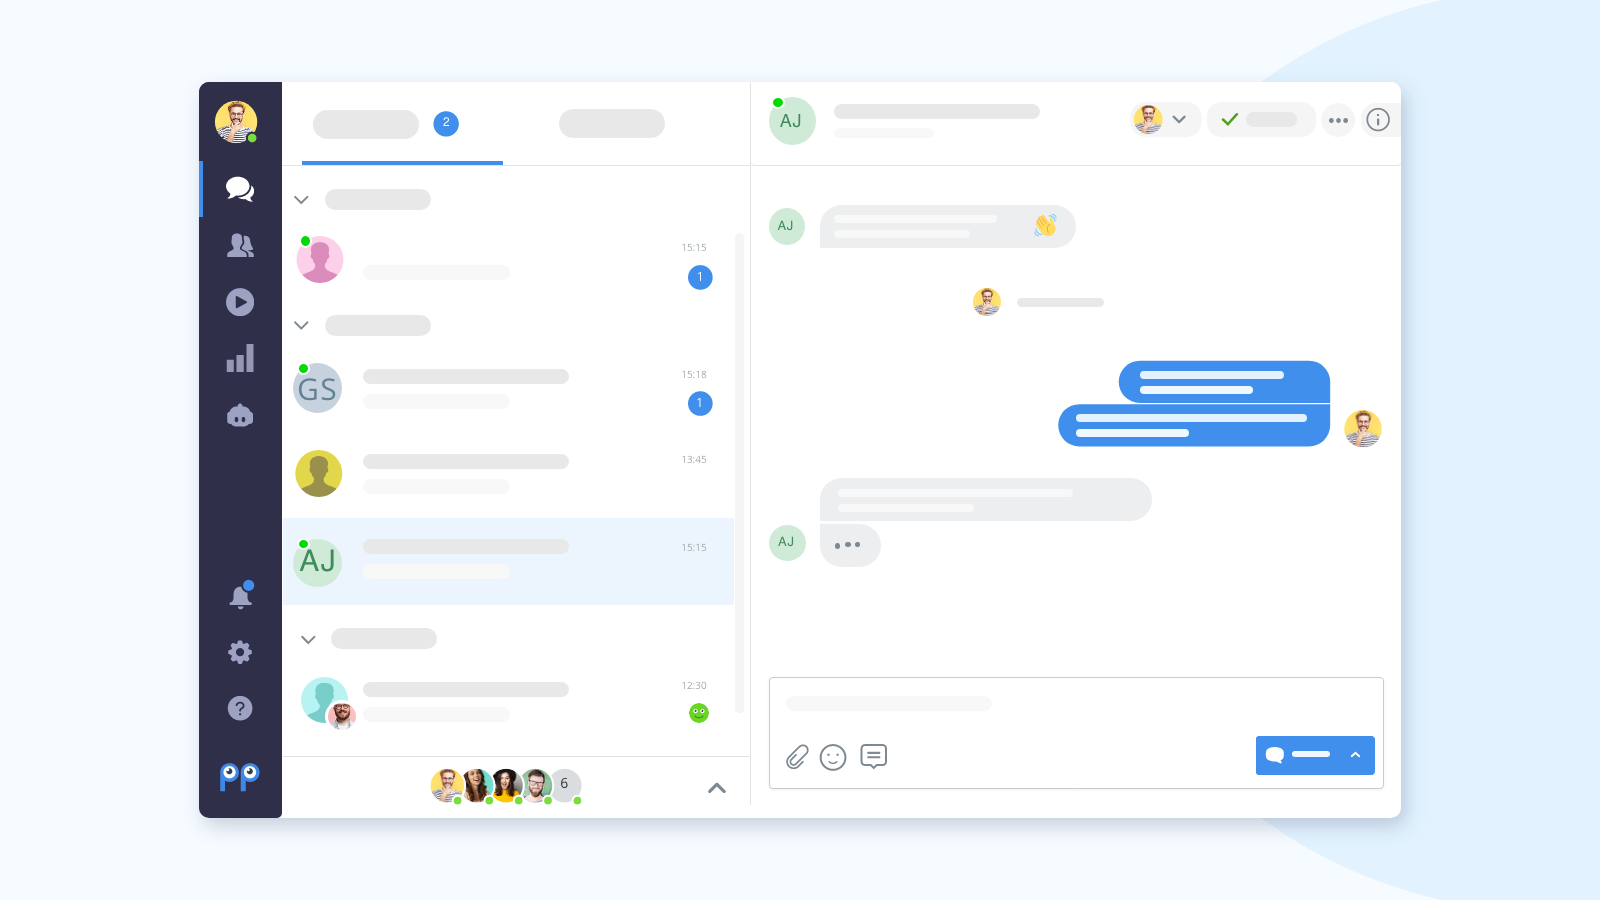 Manage incoming conversations all in one place